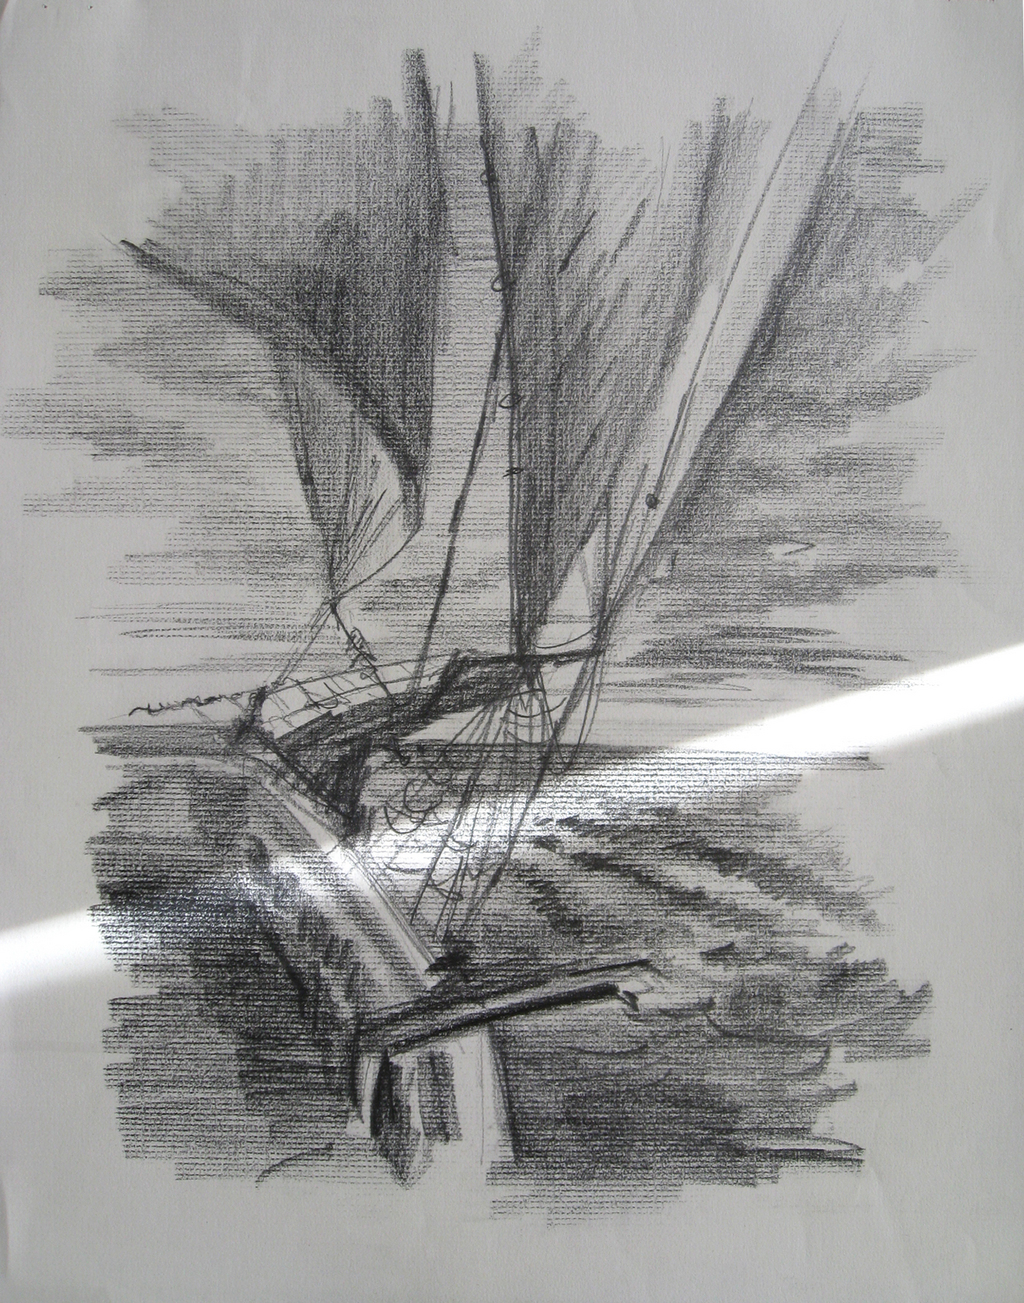 Lyudmila Kogan Artwork: Sail Boat | Original Drawing ...